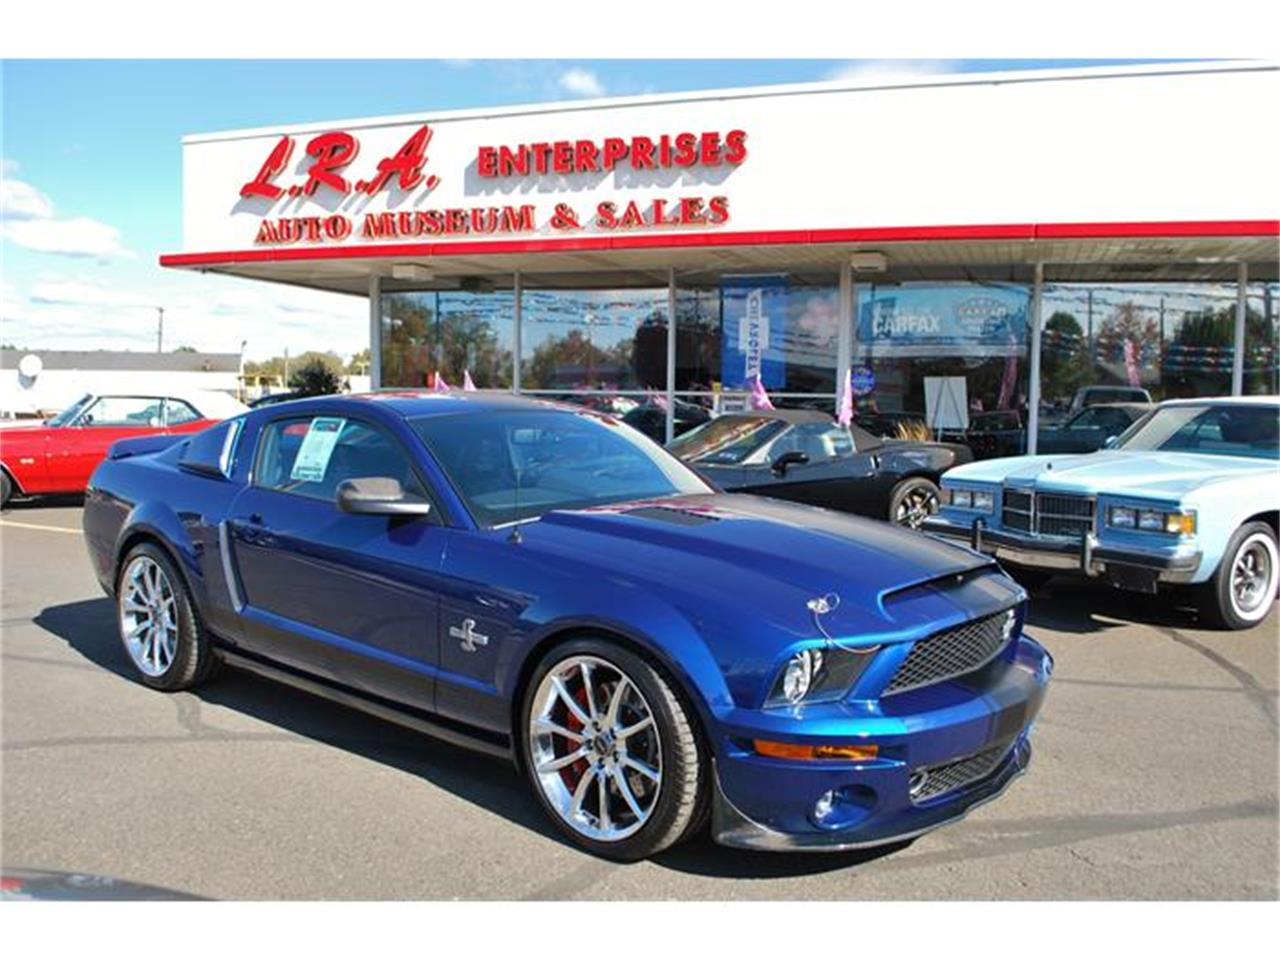 2008 ford mustang shelby gt500 for sale for Bristol motor mile dealerships